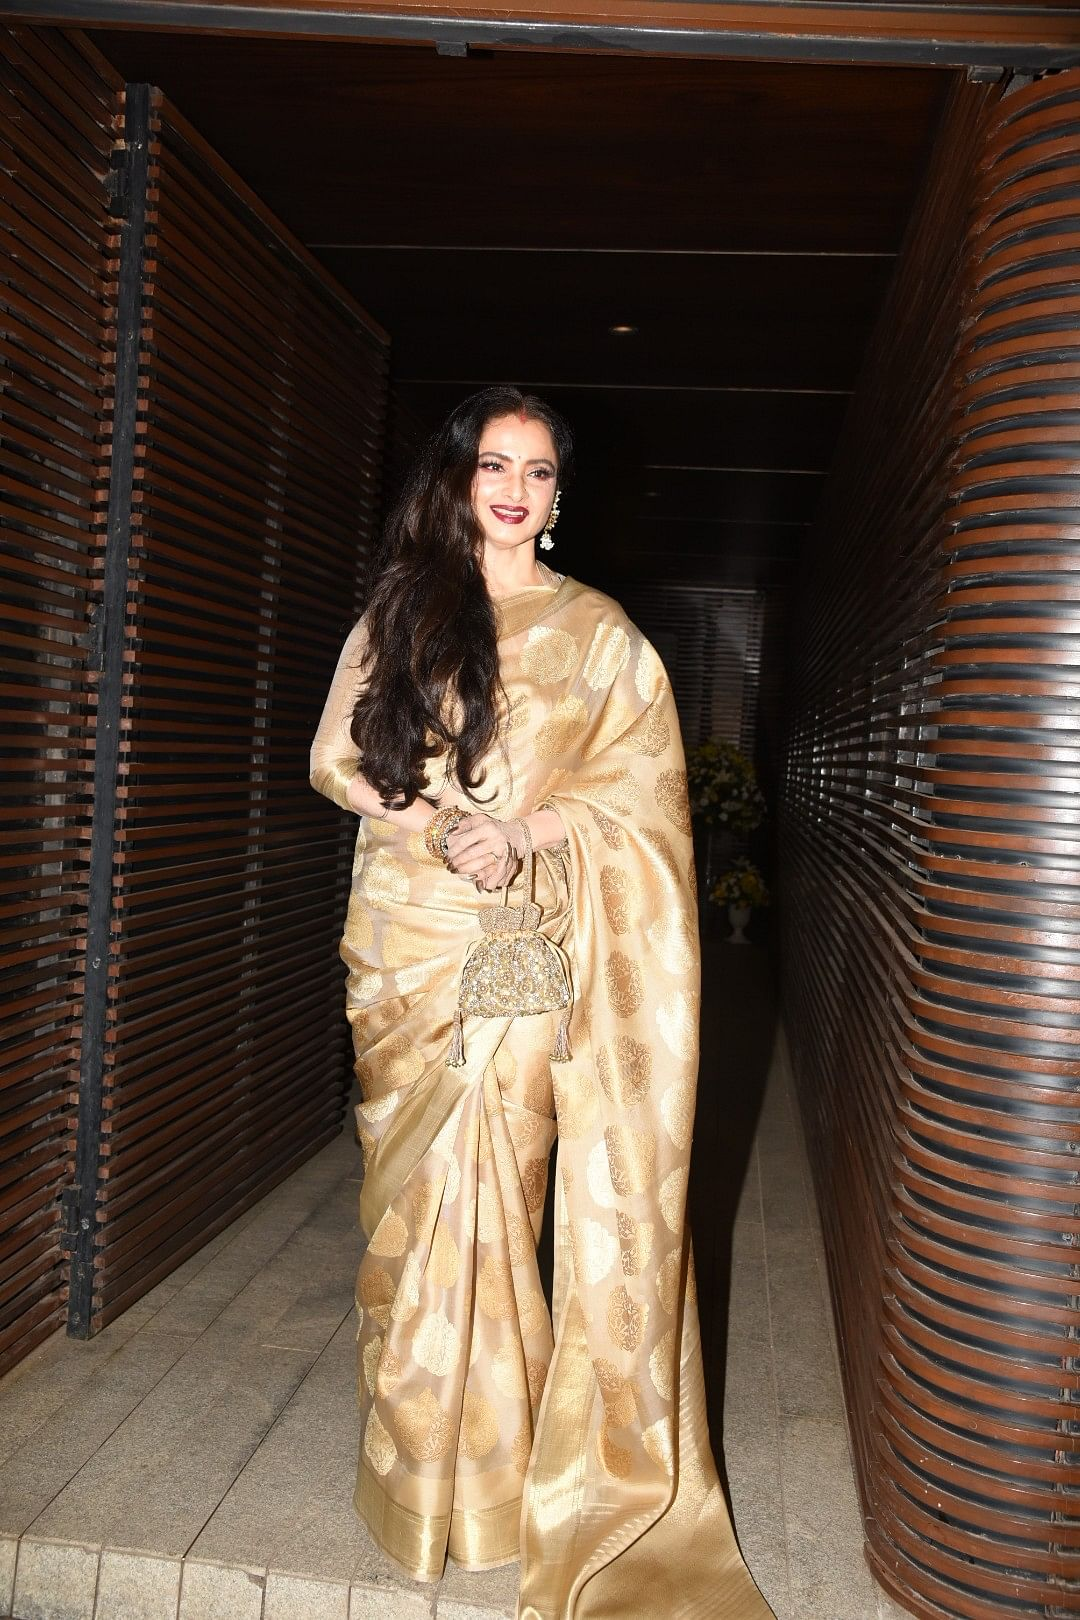 Rekha makes a statement in her classic look. (Photo: Yogen Shah)